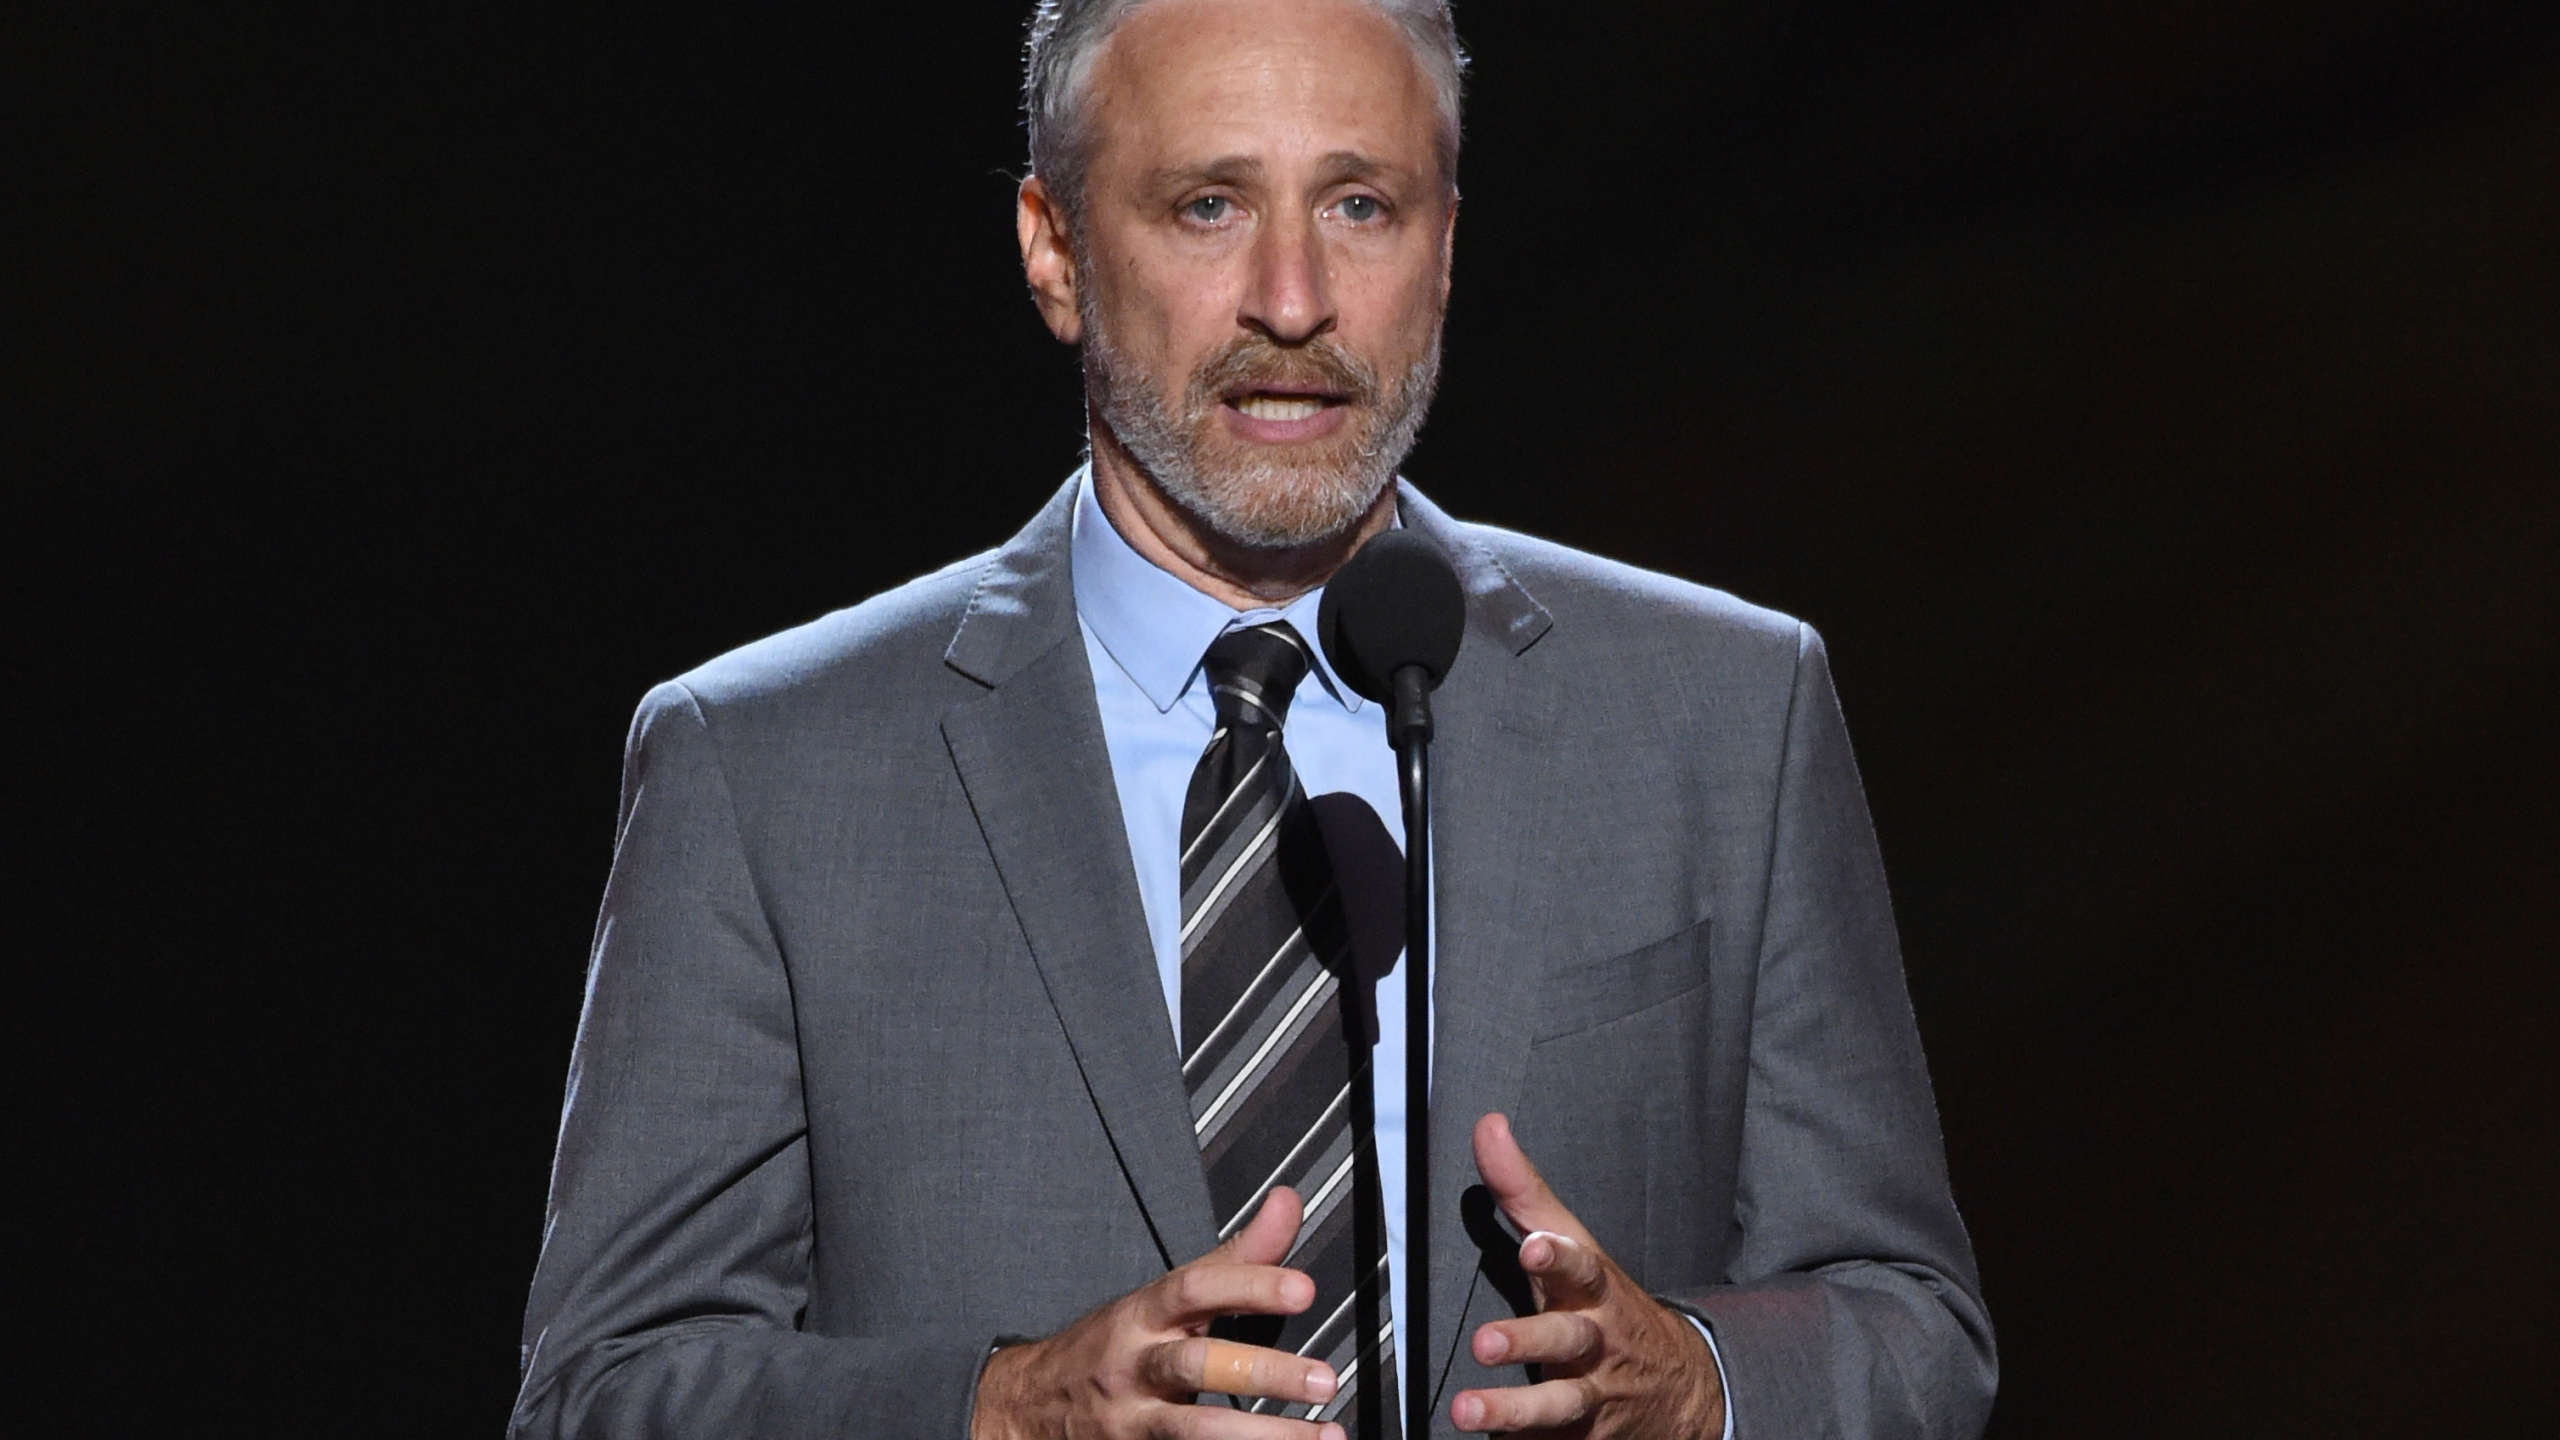 Jon Stewart presents the Pat Tillman award for service on July 18, 2018, at the ESPY Awards in Los Angeles. (Phil McCarten/Invision/AP, File)